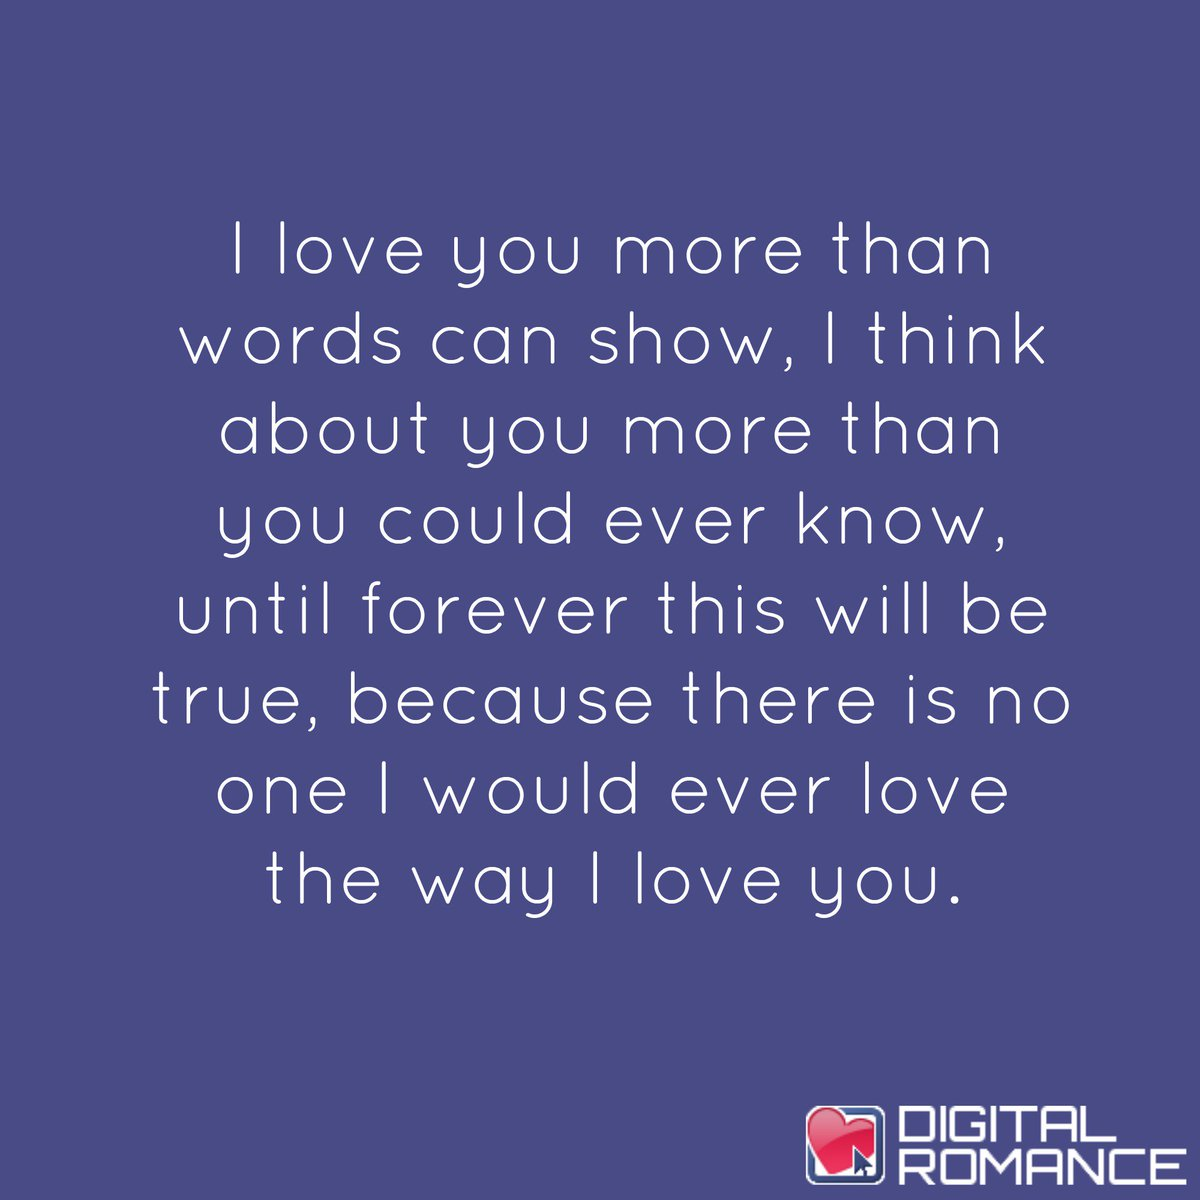 Digital Romance Inc On Twitter I Love You More Than Words Can Show